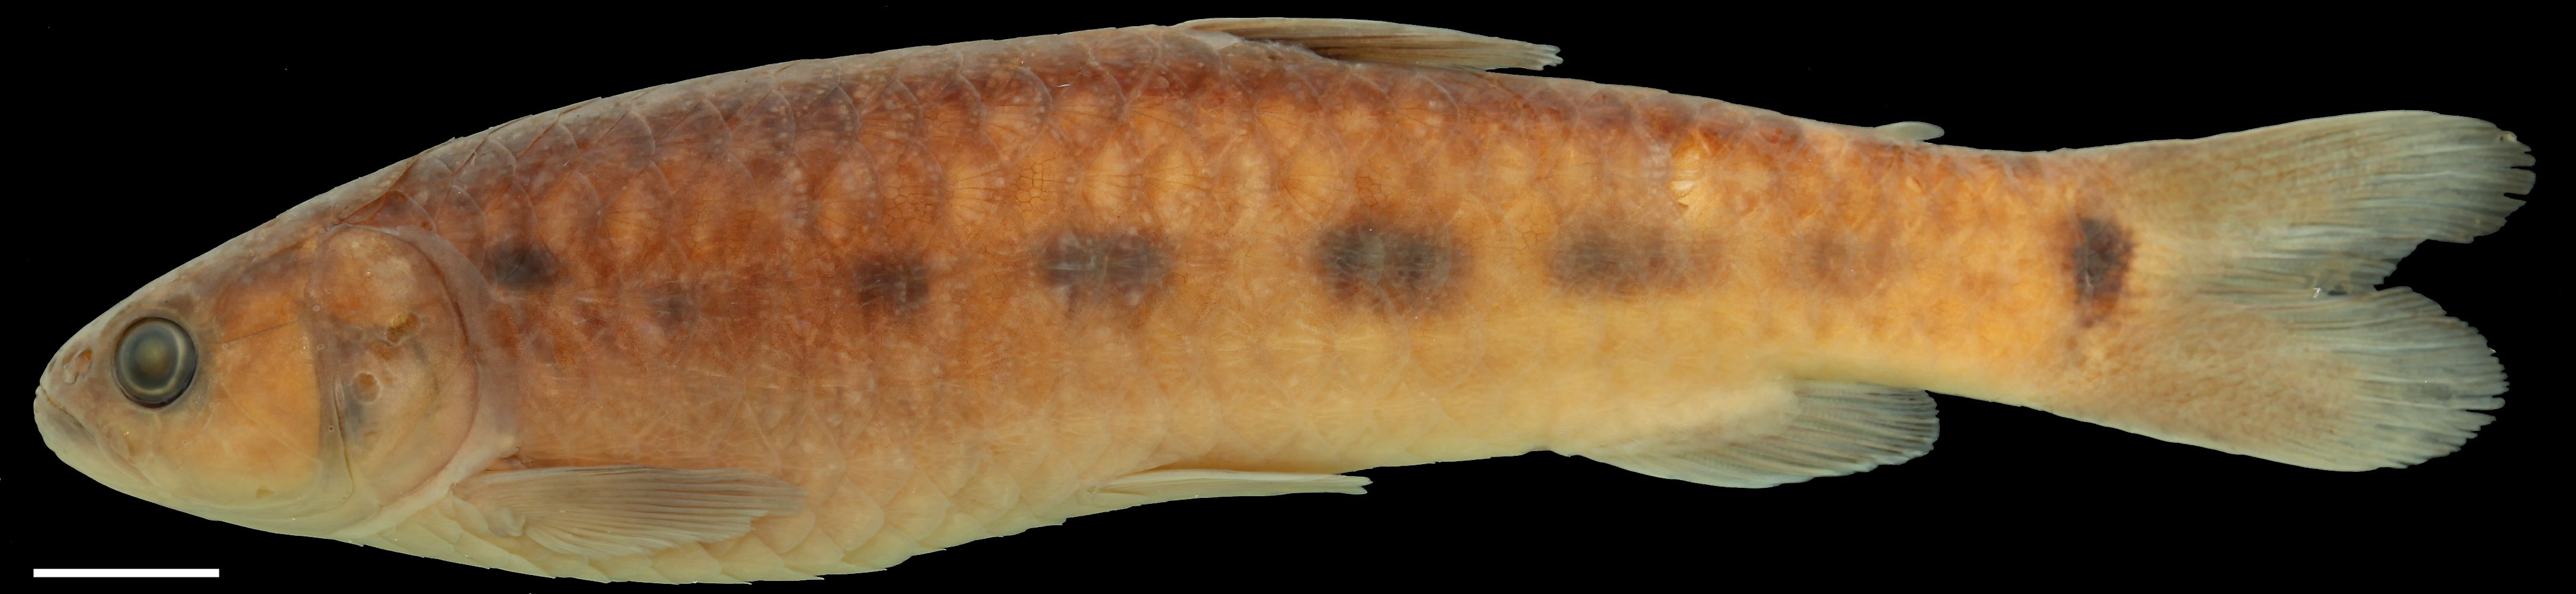 Paratype of <em>Lebiasina chocoensis</em>, IAvH-P-11380_Lateral, 113.2 mm SL (scale bar = 1 cm). Photograph by C. DoNascimiento.